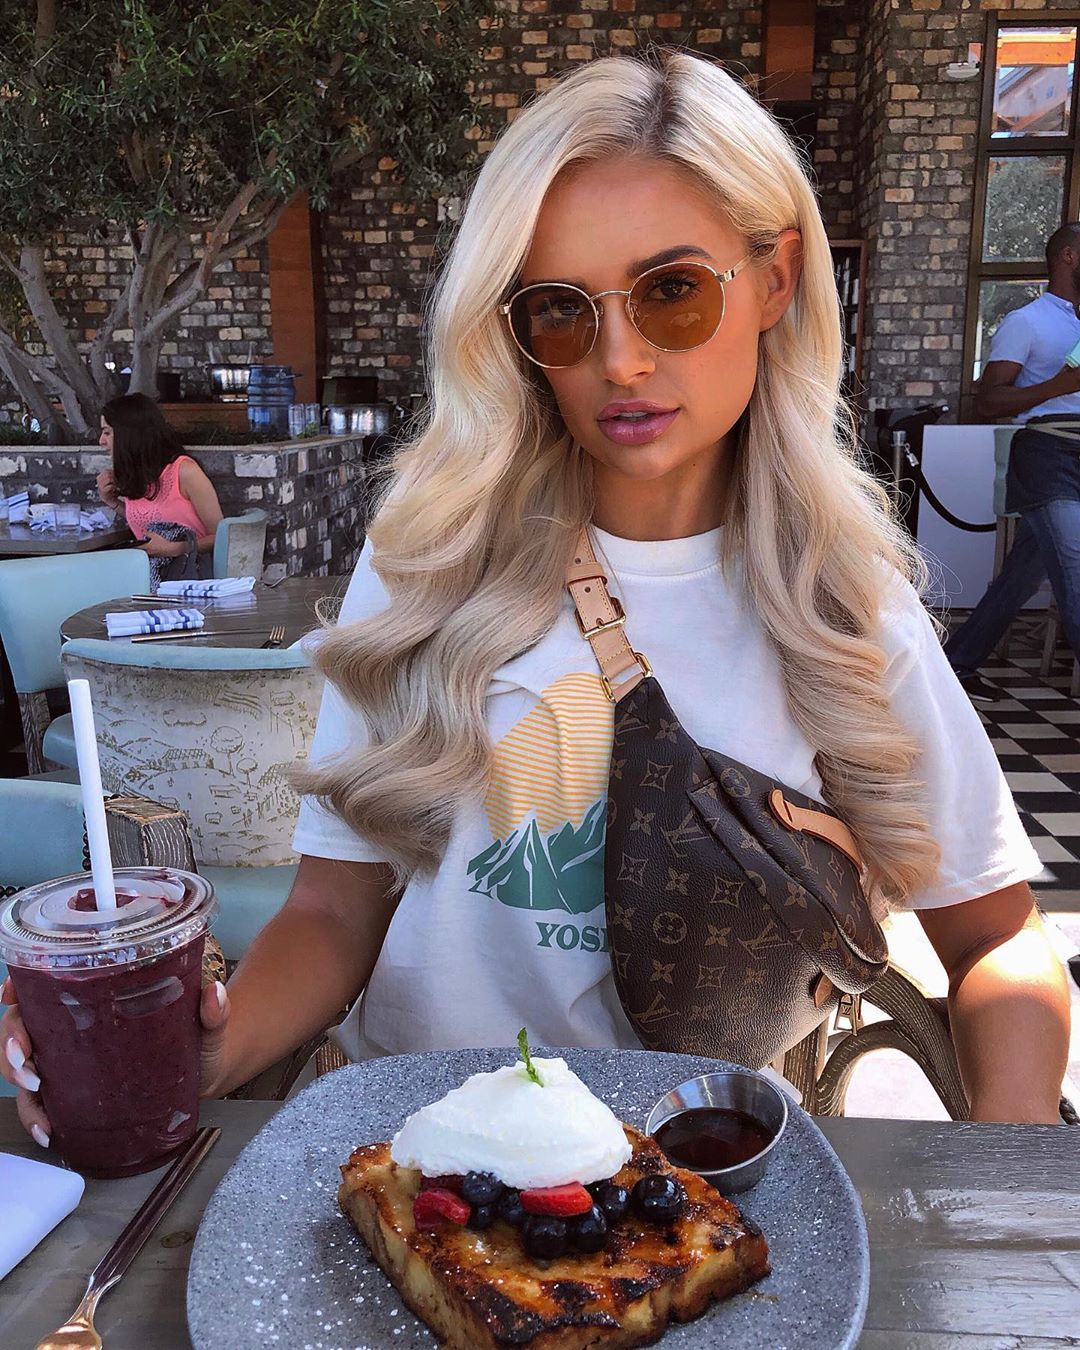 Image may contain: Love Island cast GCSE results, GCSE, results day, 2019, exams, Molly-Mae Hague, Love Island, cast, Islanders, GCSE results day 2019, Food Court, Restaurant, Food, Accessory, Sunglasses, Accessories, Human, Person